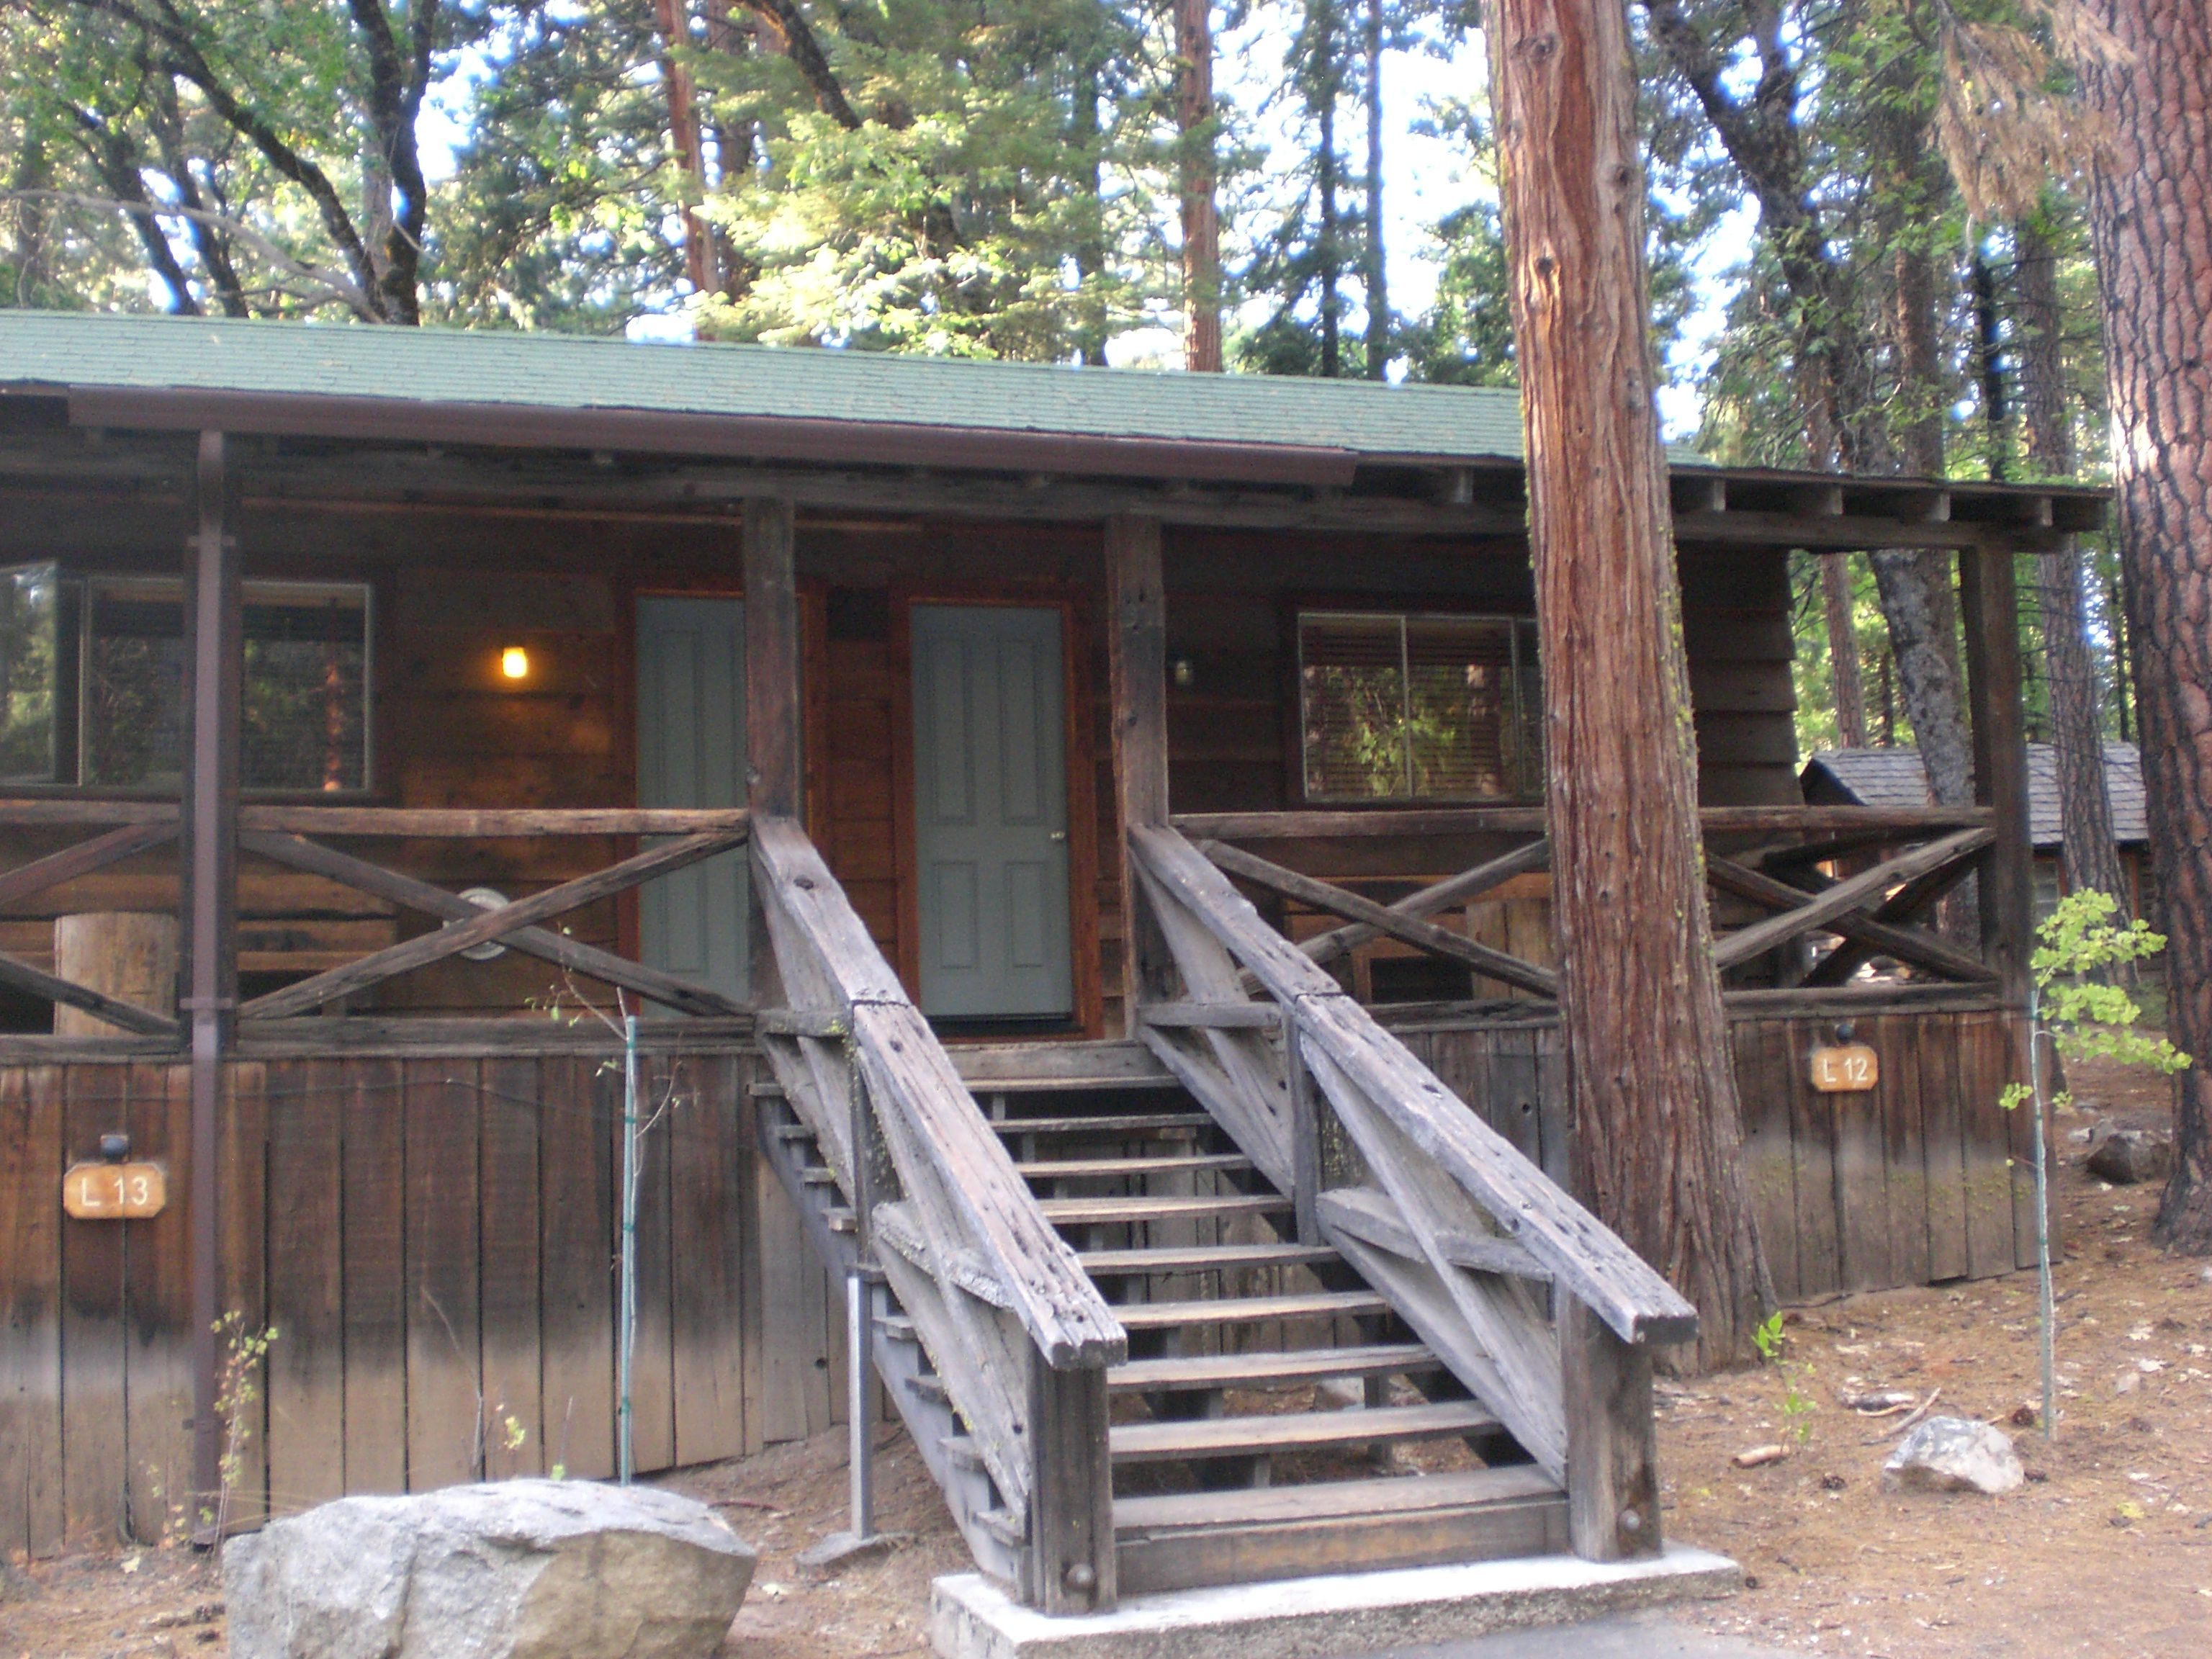 cabins necessities s tent the our curry bear yosemite times yosemites good village cabin with